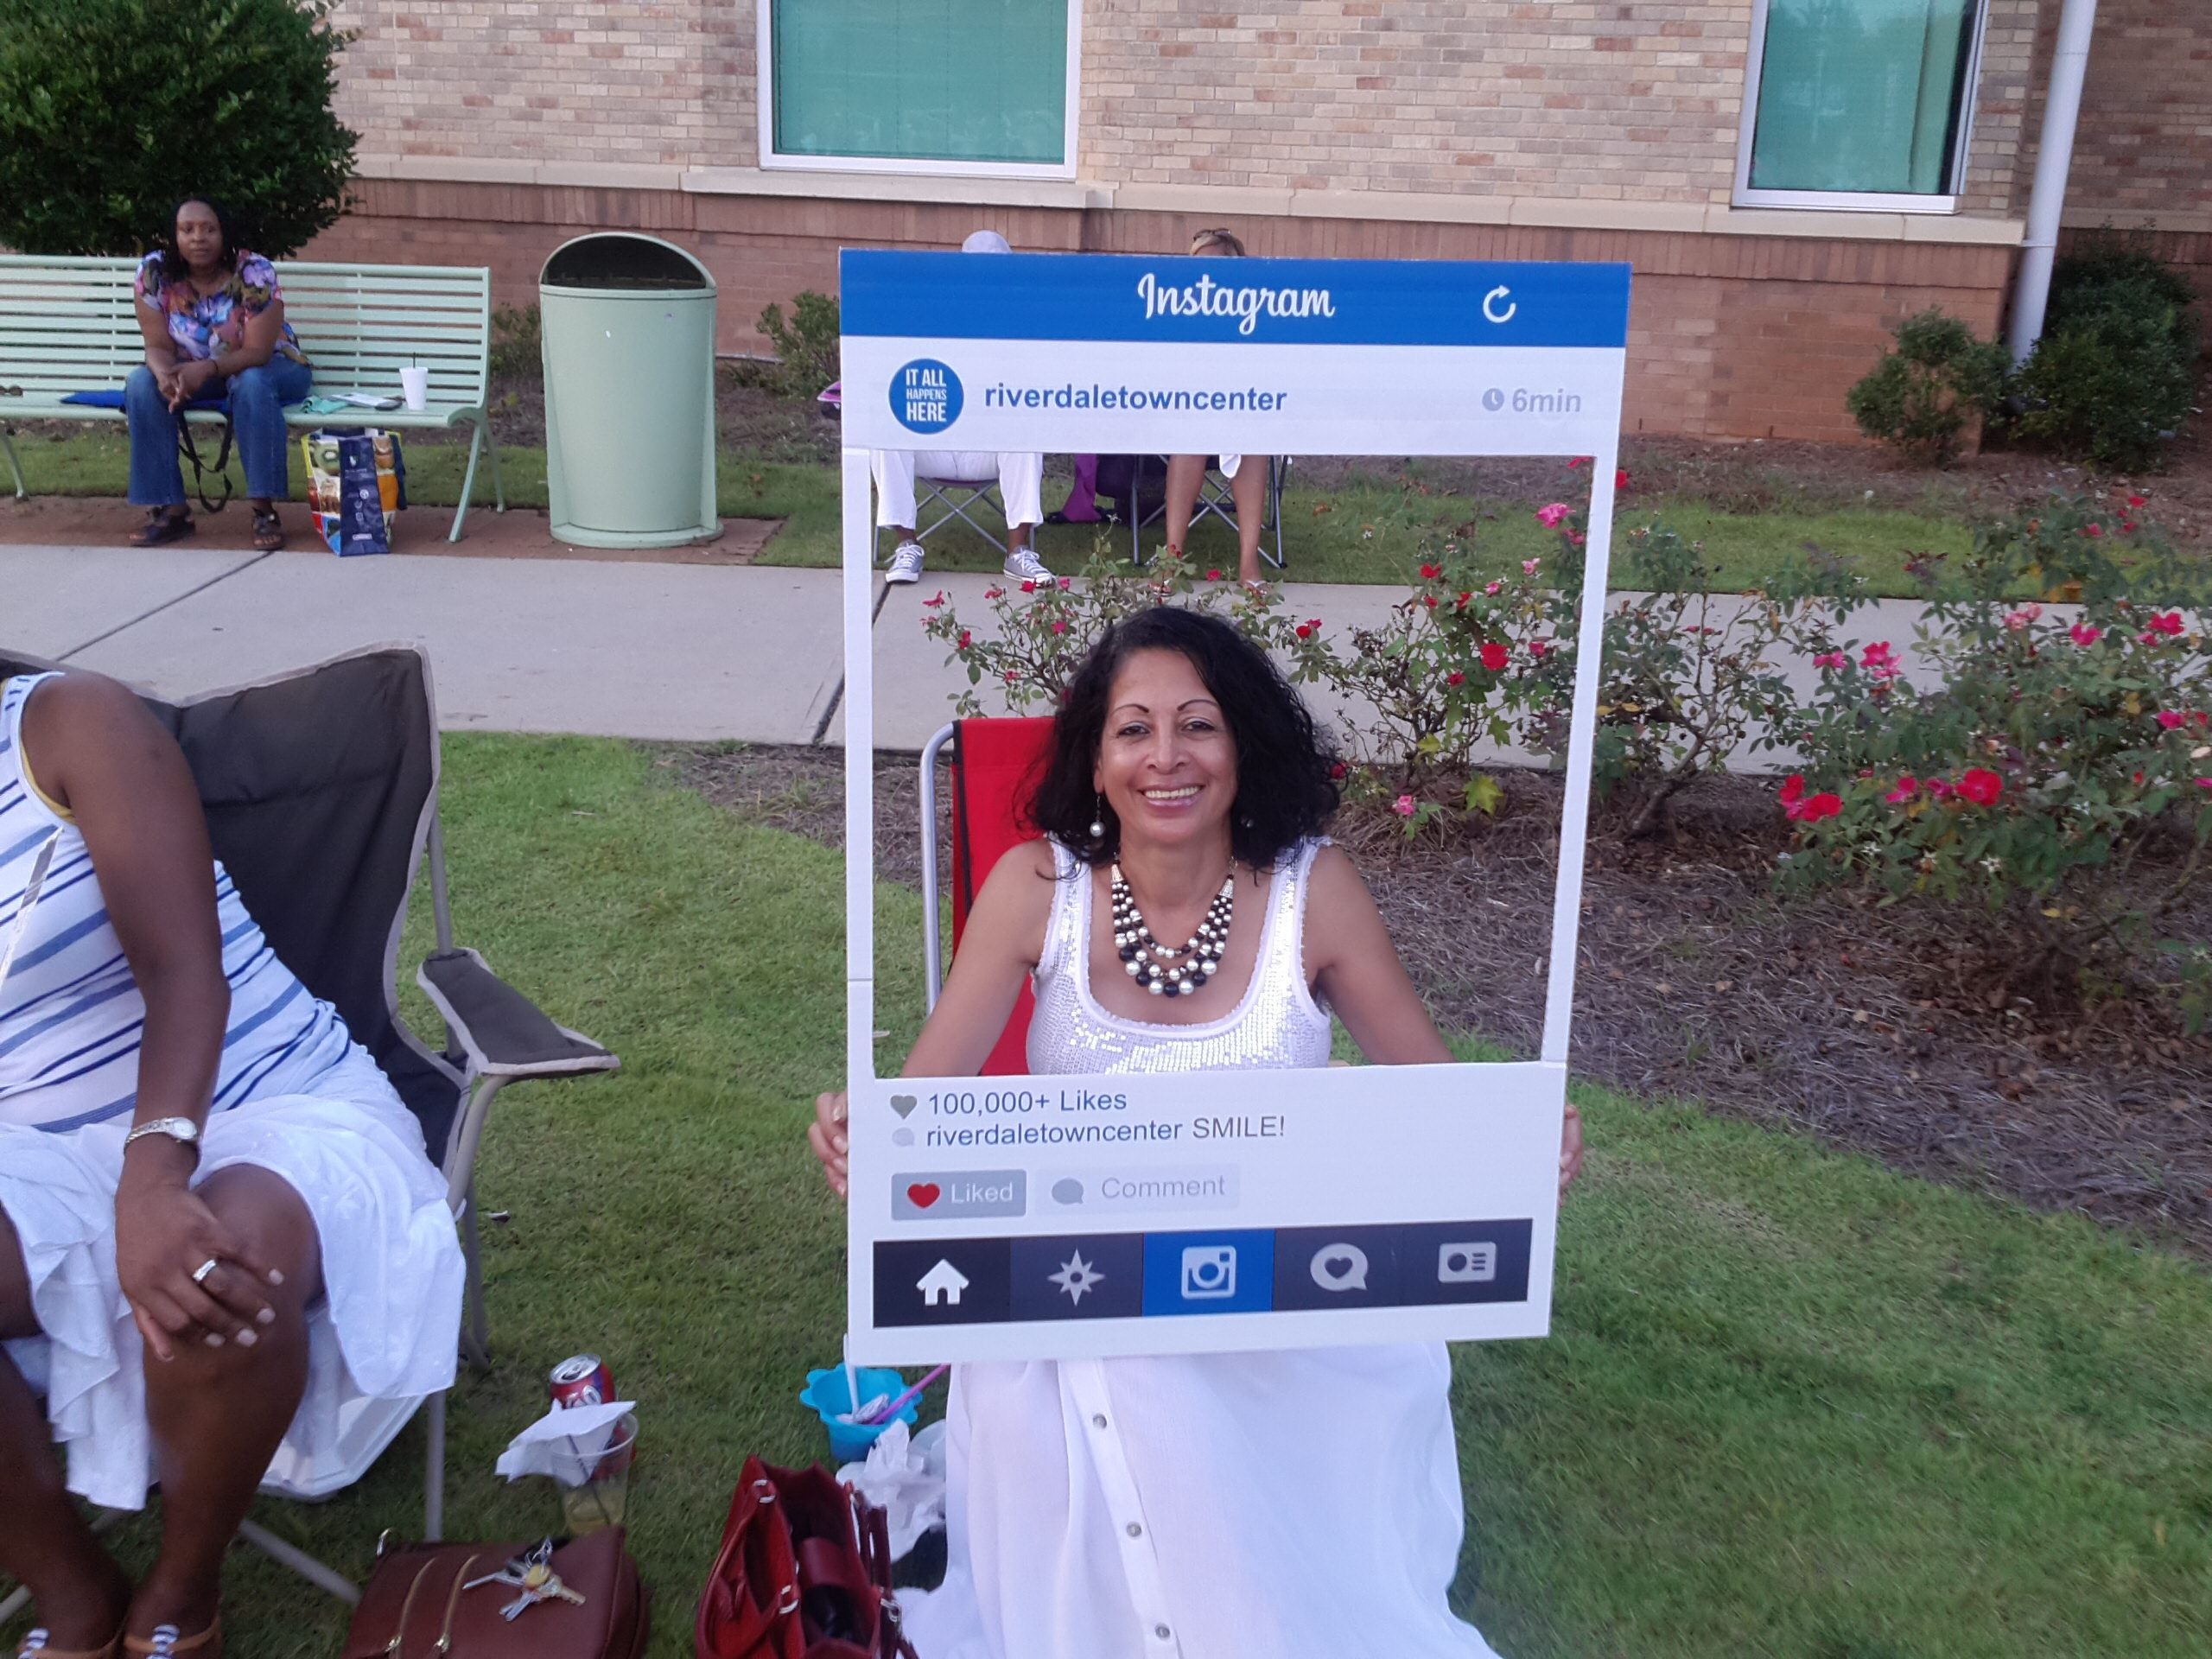 Woman Sitting in Lawn Chair with Instagram Cut Out